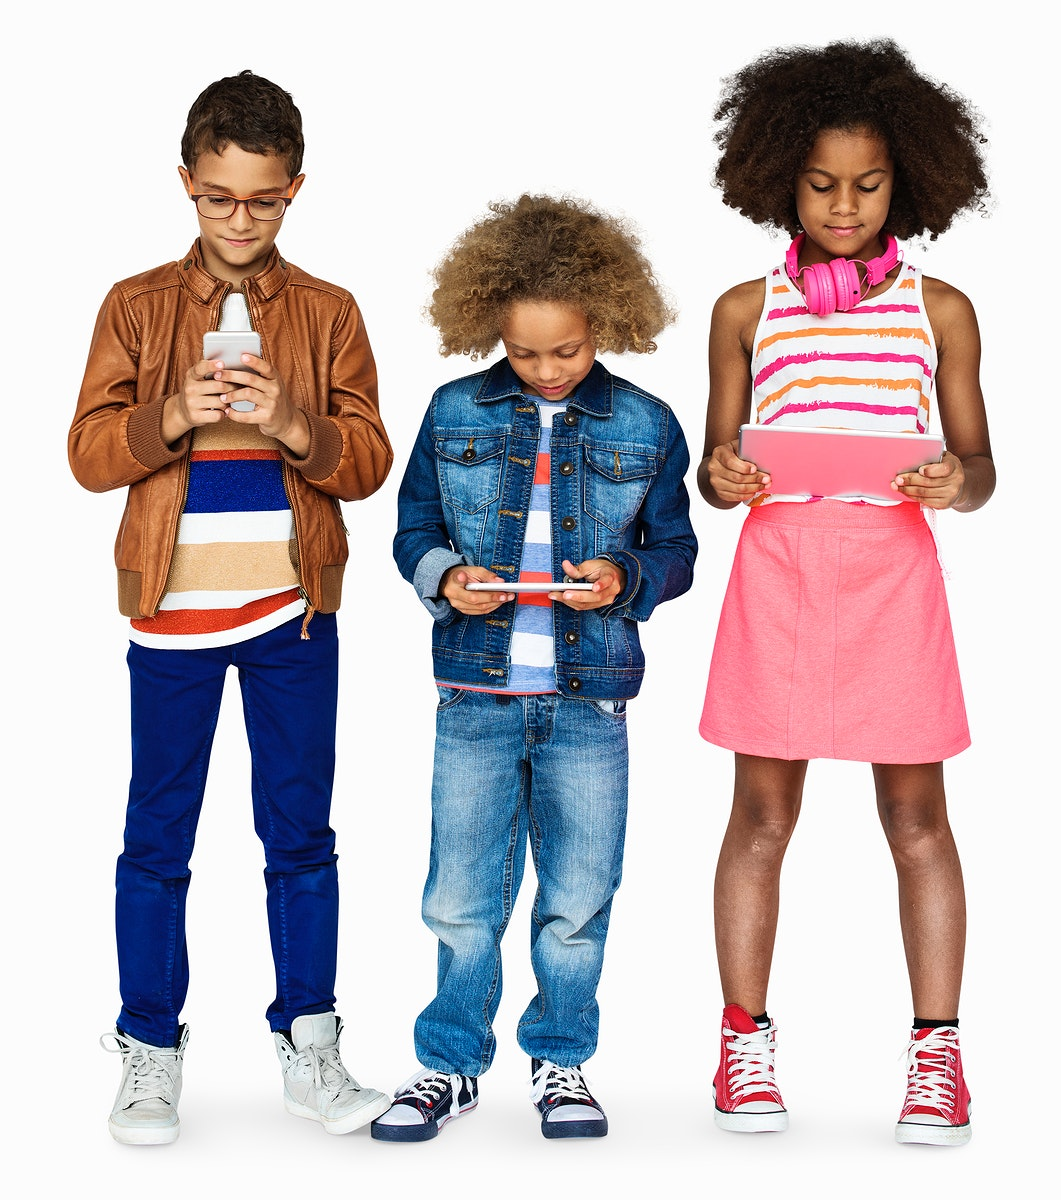 Kids playing on mobile devices